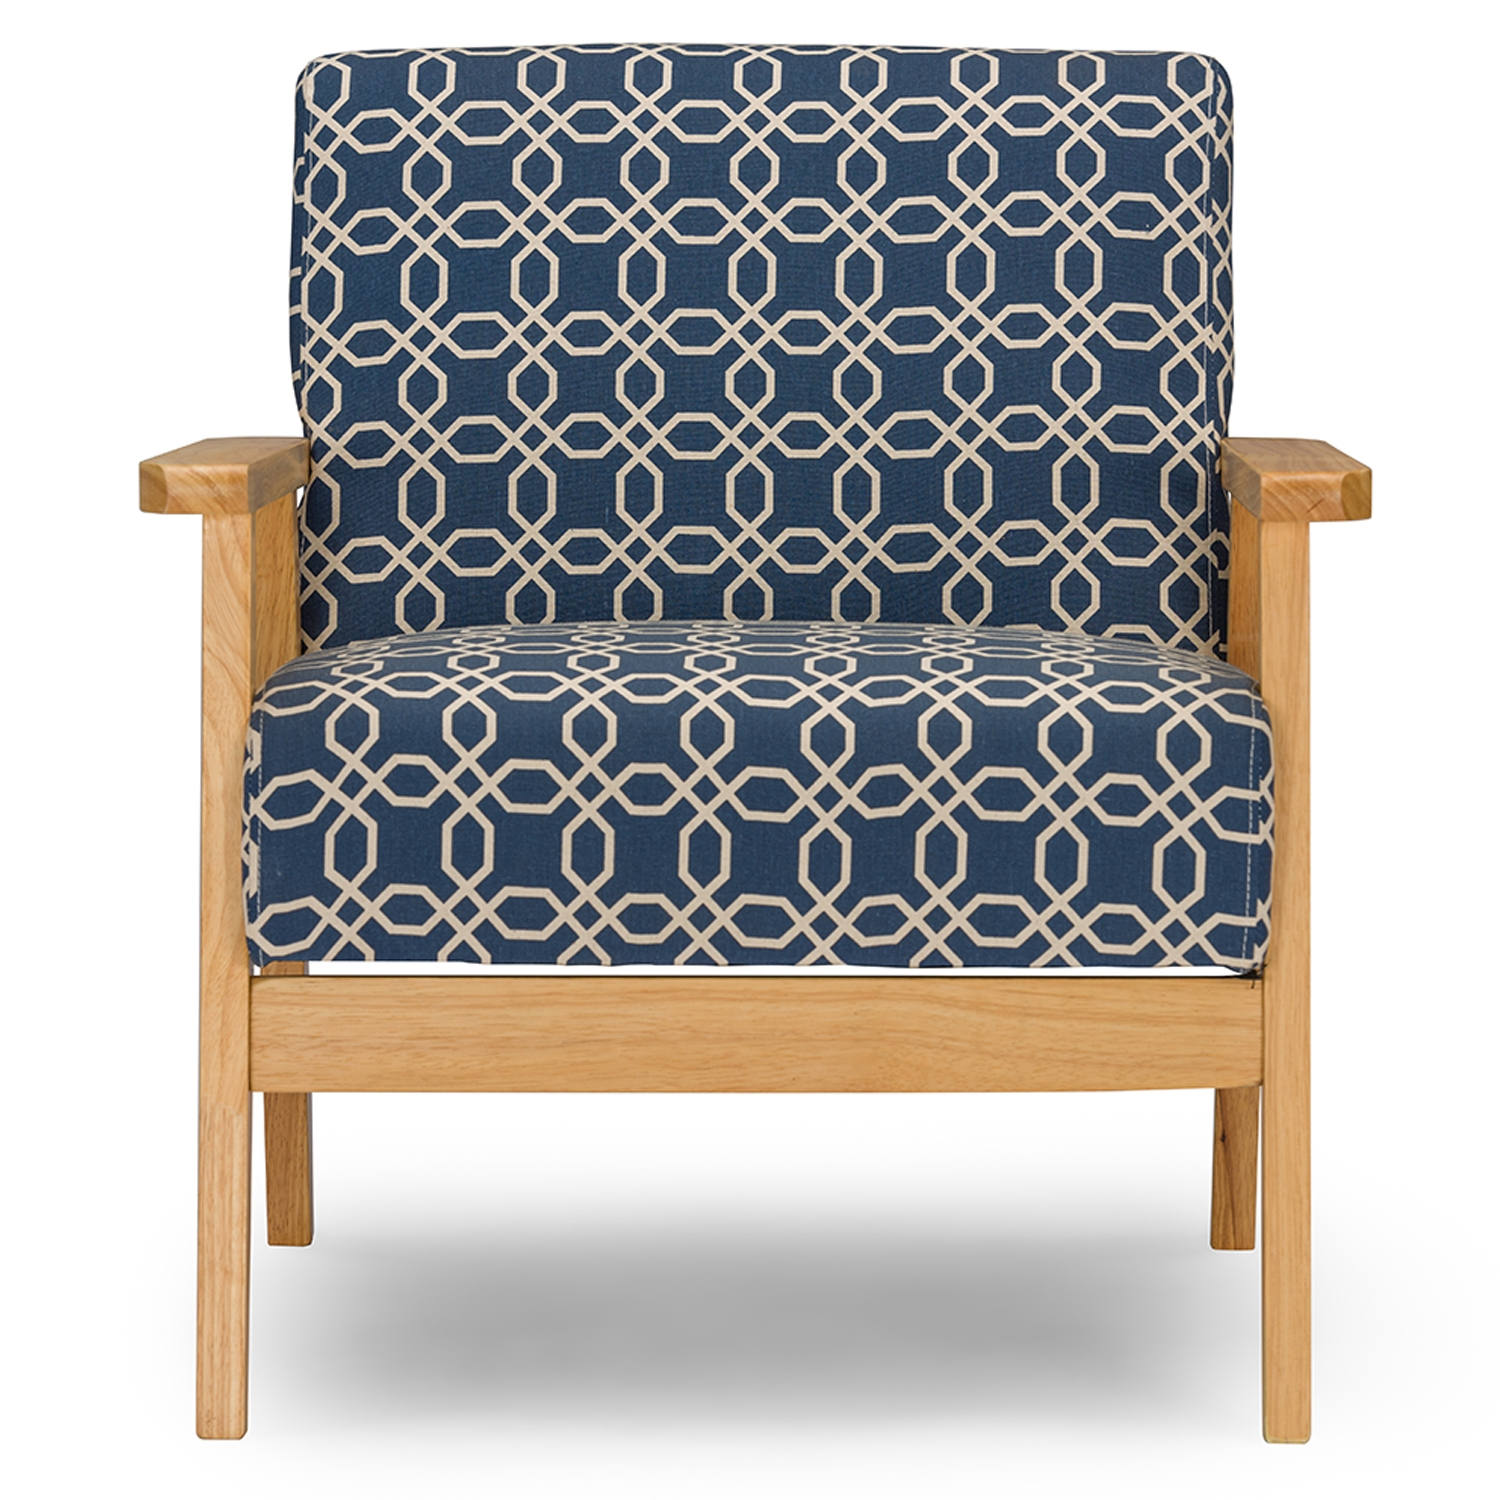 Baxton Studio Francis Retro Mid Century Navy Blue Patterned Fabric Armchair